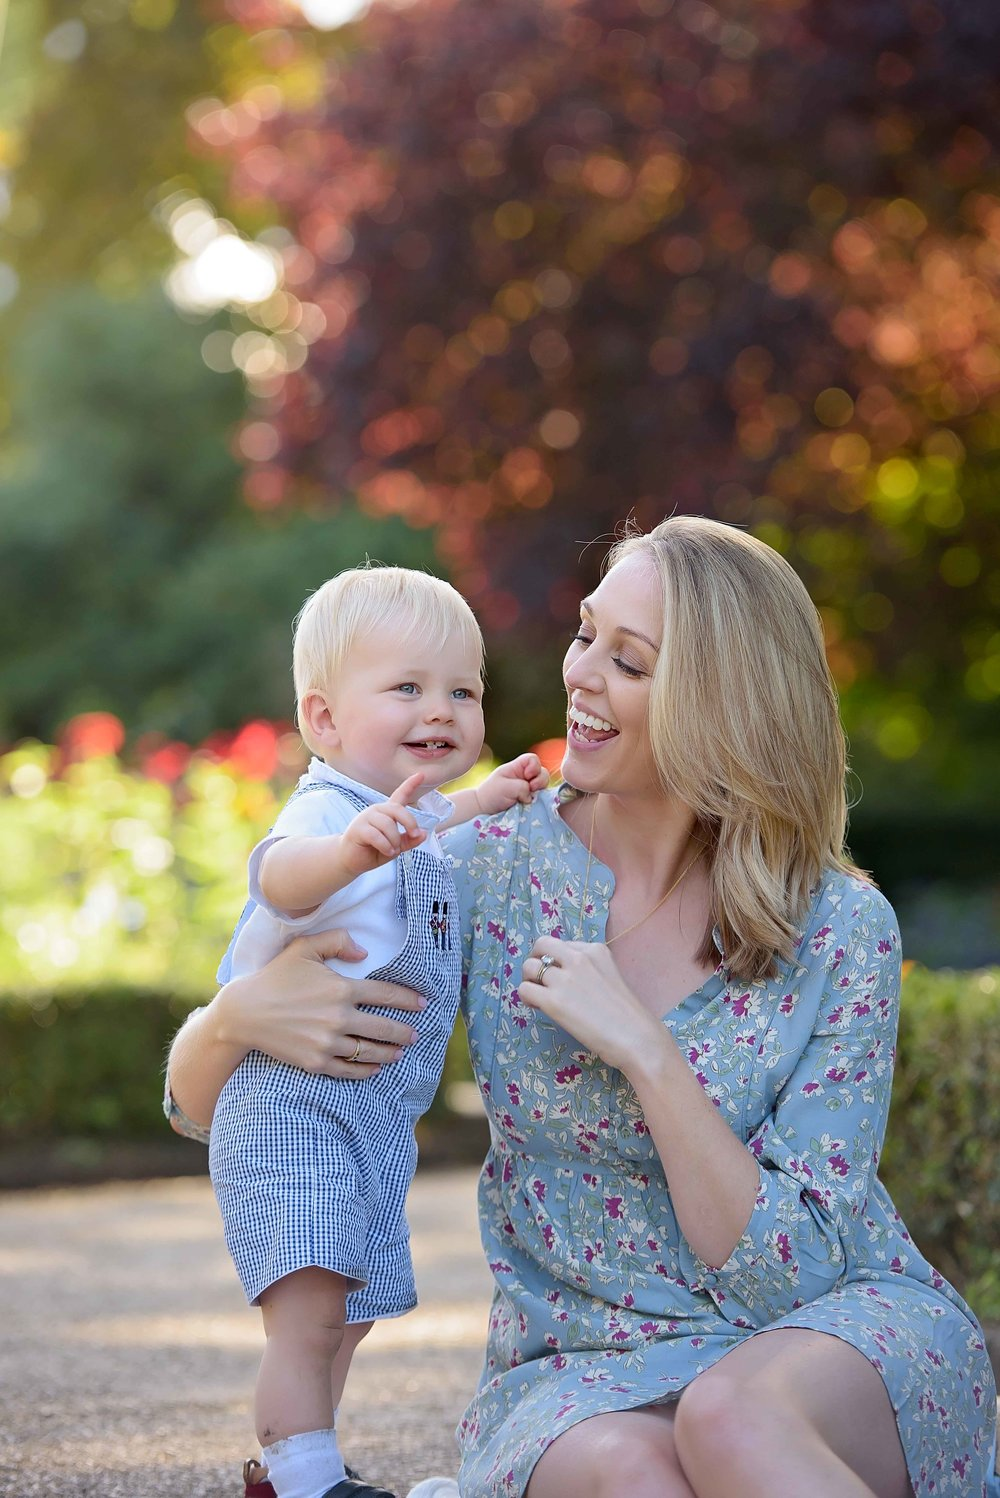 Best family photographers in UK